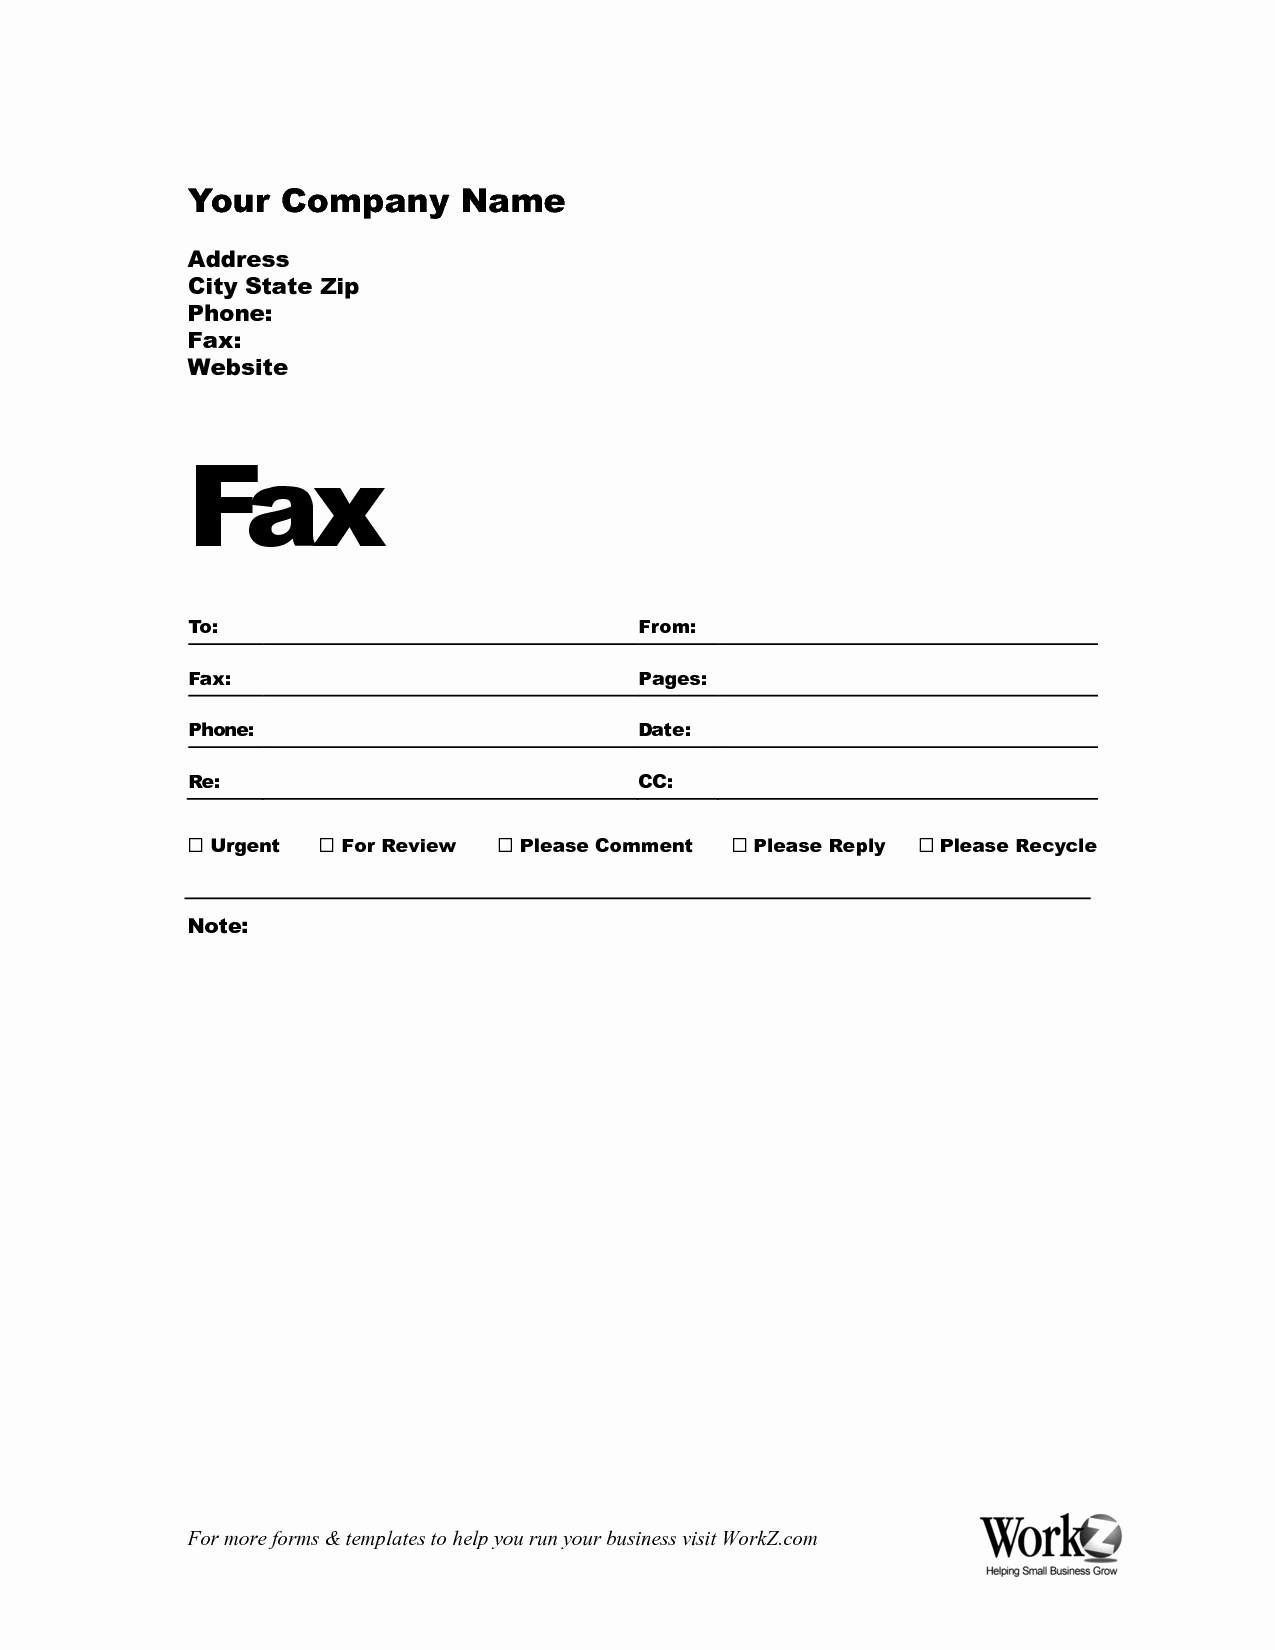 Cover Sheet for Fax Example Lovely Free Fax Cover Sheet Template Bamboodownunder